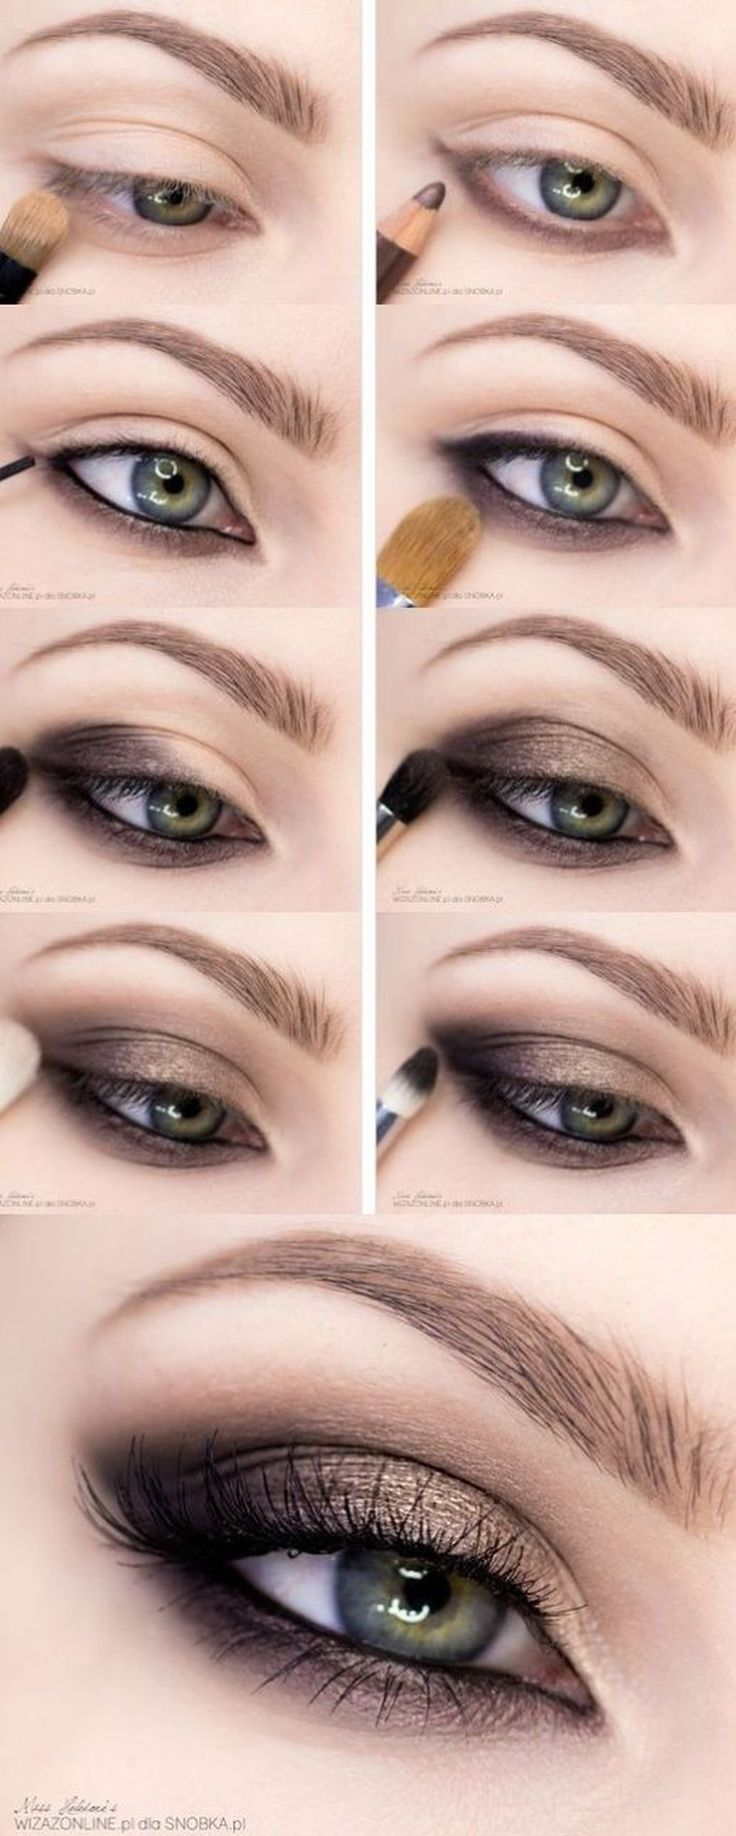 30+ Straightforward Eye Make-up Tutorials Concepts For Inexperienced persons To Strive